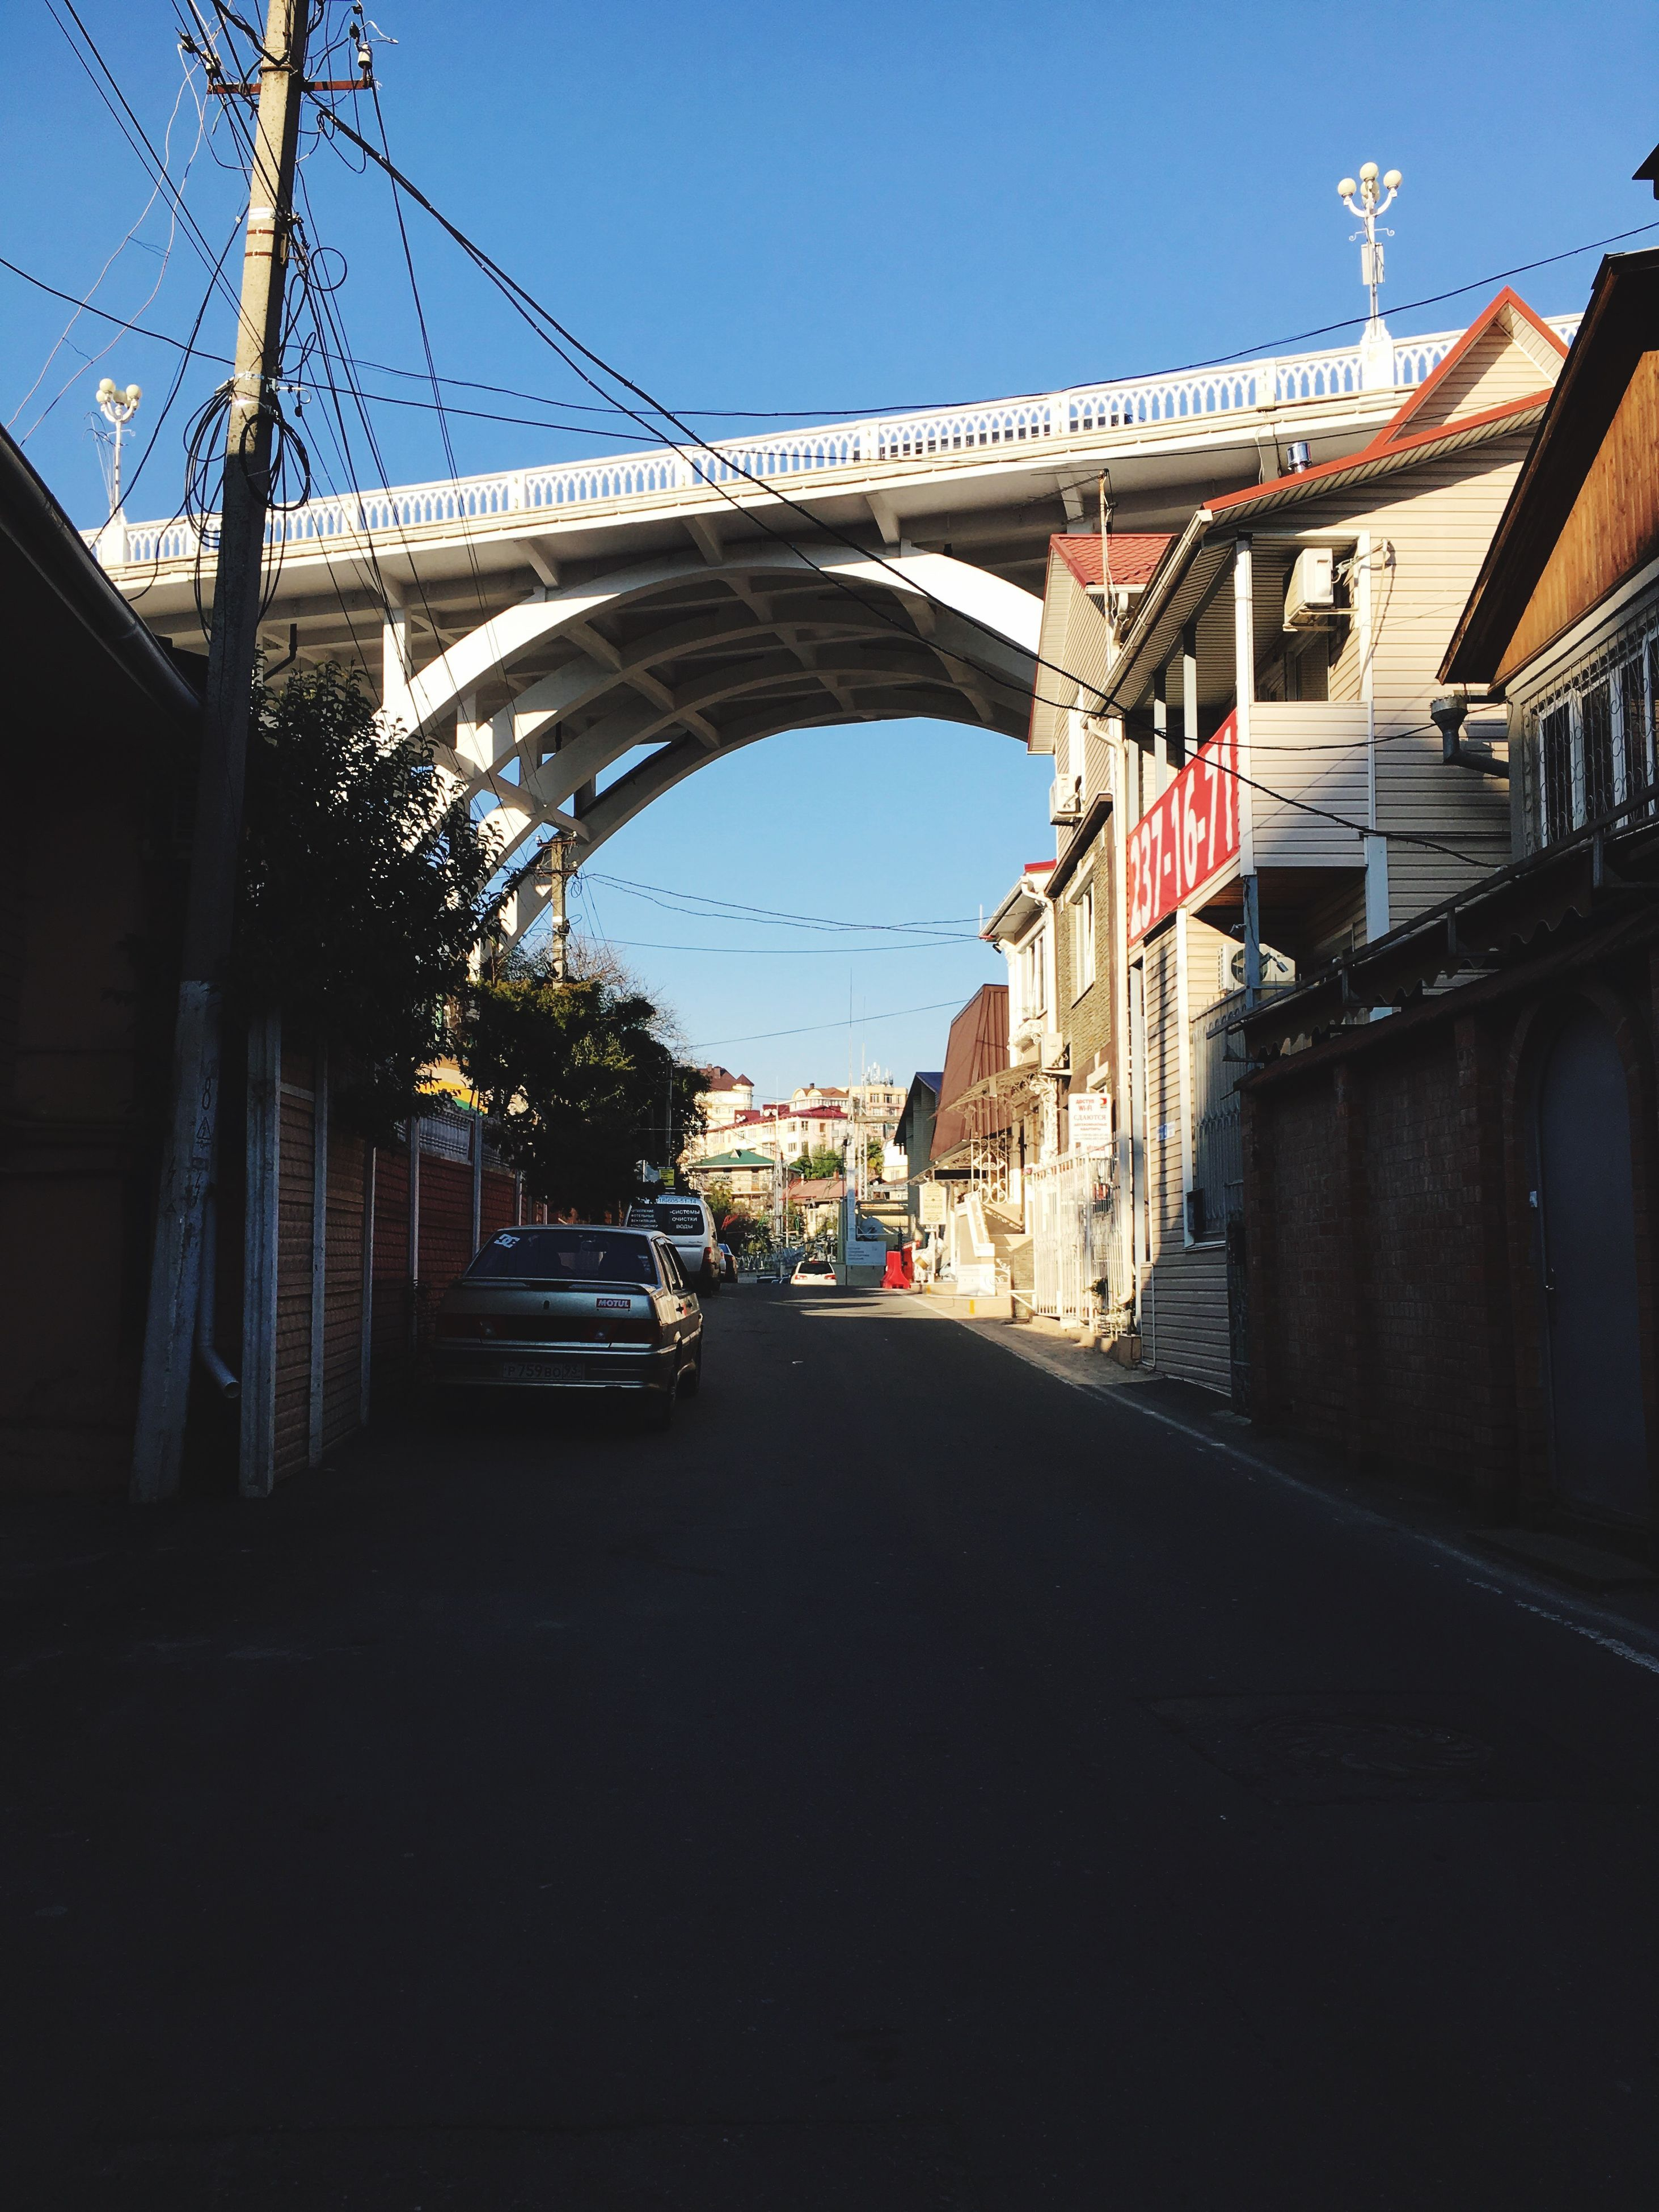 built structure, architecture, transportation, bridge - man made structure, sunlight, building exterior, outdoors, no people, day, connection, sky